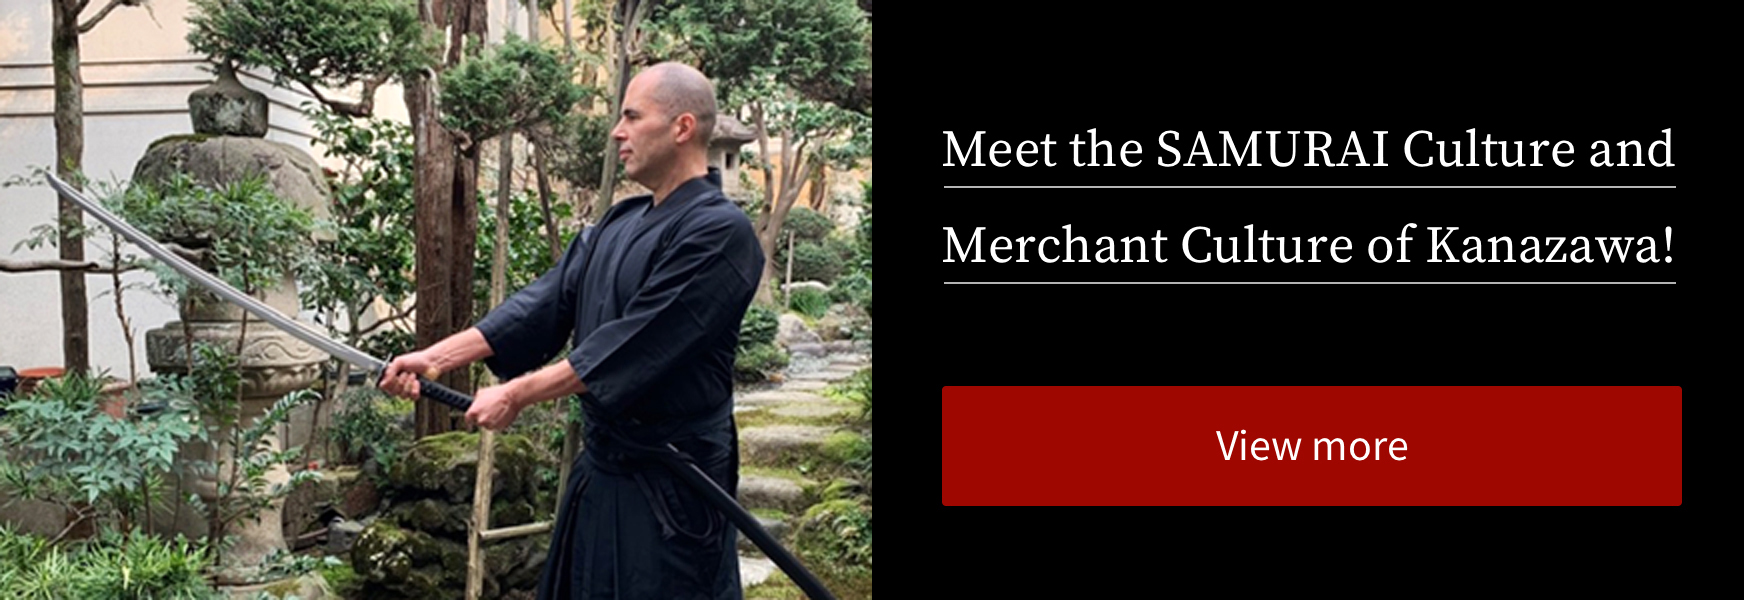 Meet the SAMURAI Culture and Merchant Culture of Kanazawa!